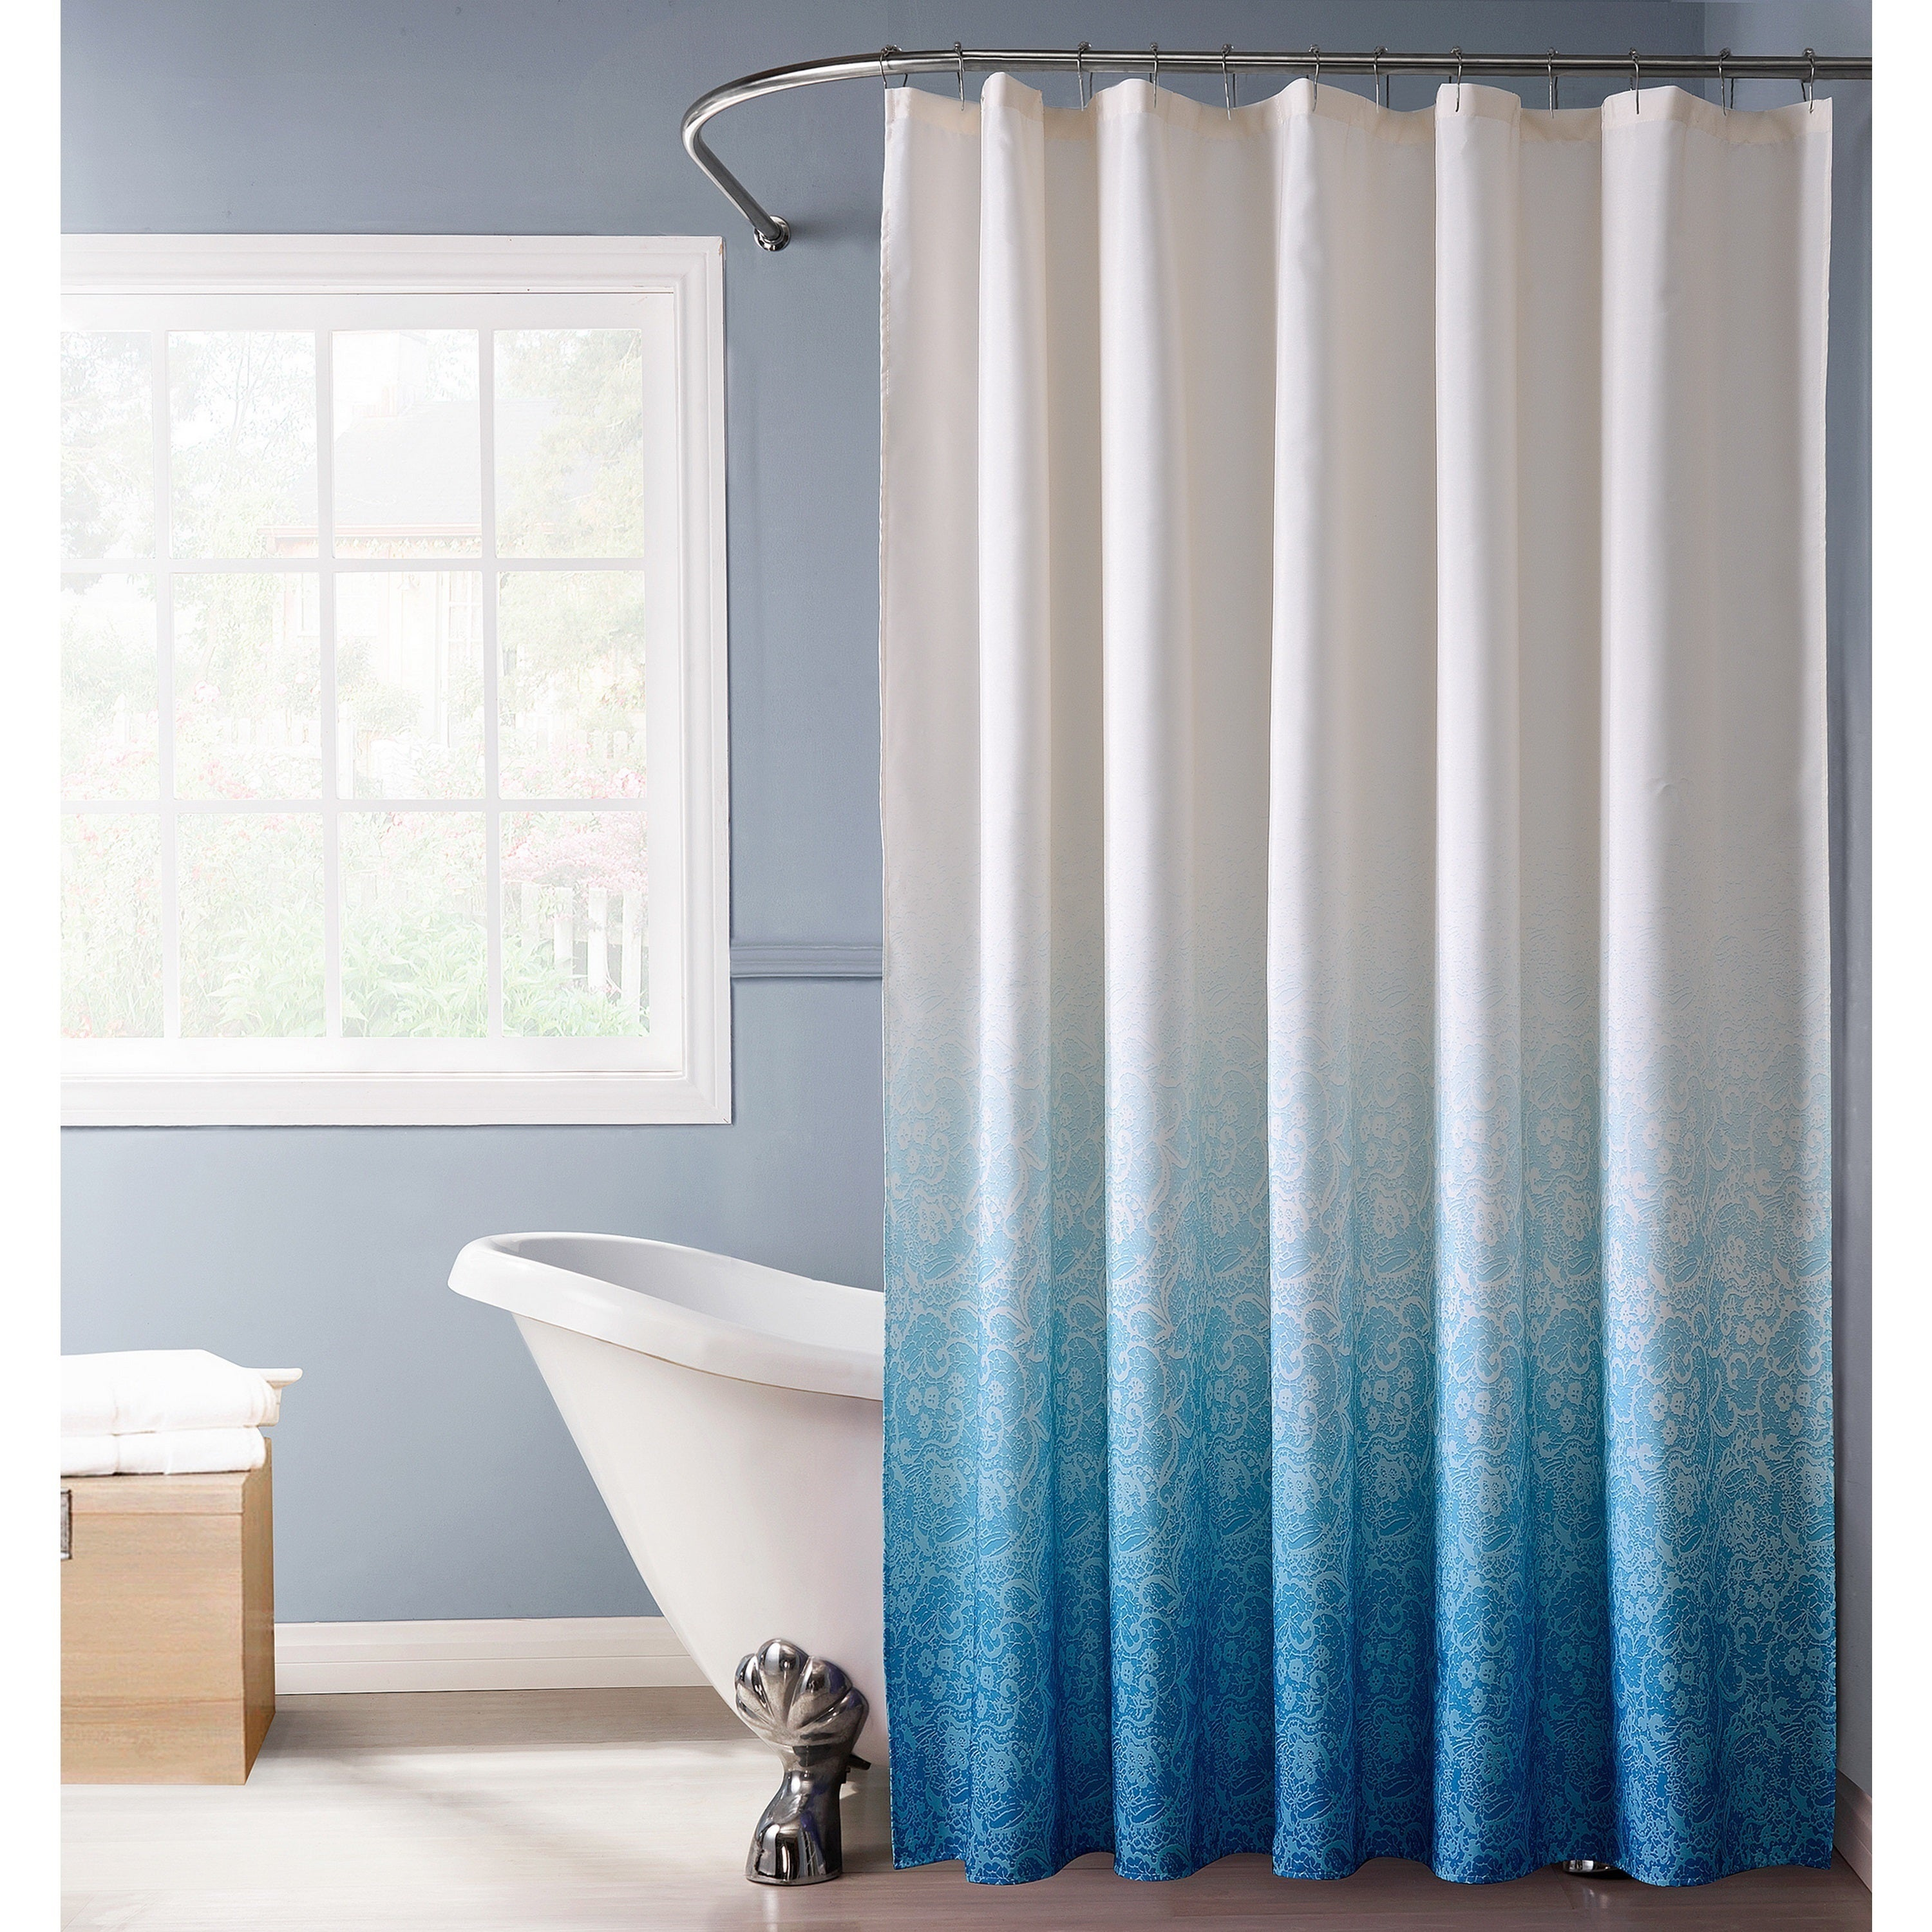 Shop Bath Bliss Polyester Lace Printed Ombre Shower Curtain in Blue ...